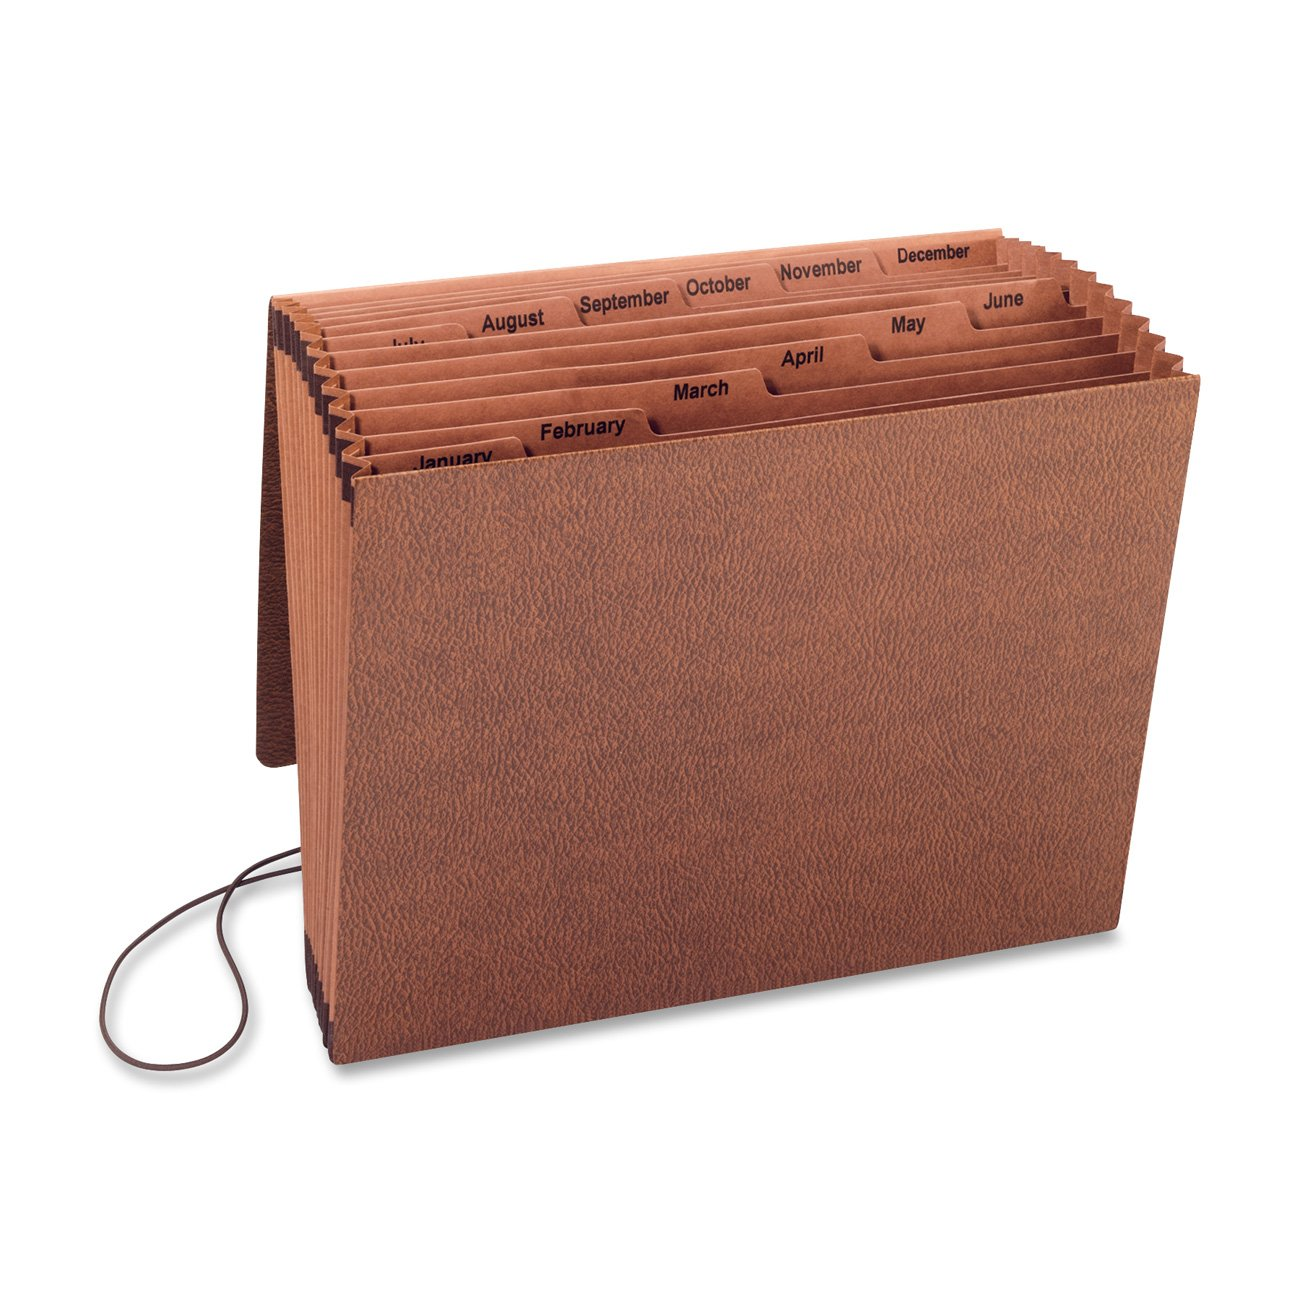 S.P. Richards Company Accordion File with Flap, Jan-Dec, 12 Pocket, Letter, 12 x 10 Inches, Brown (SPR23682) S.P. Richards CA